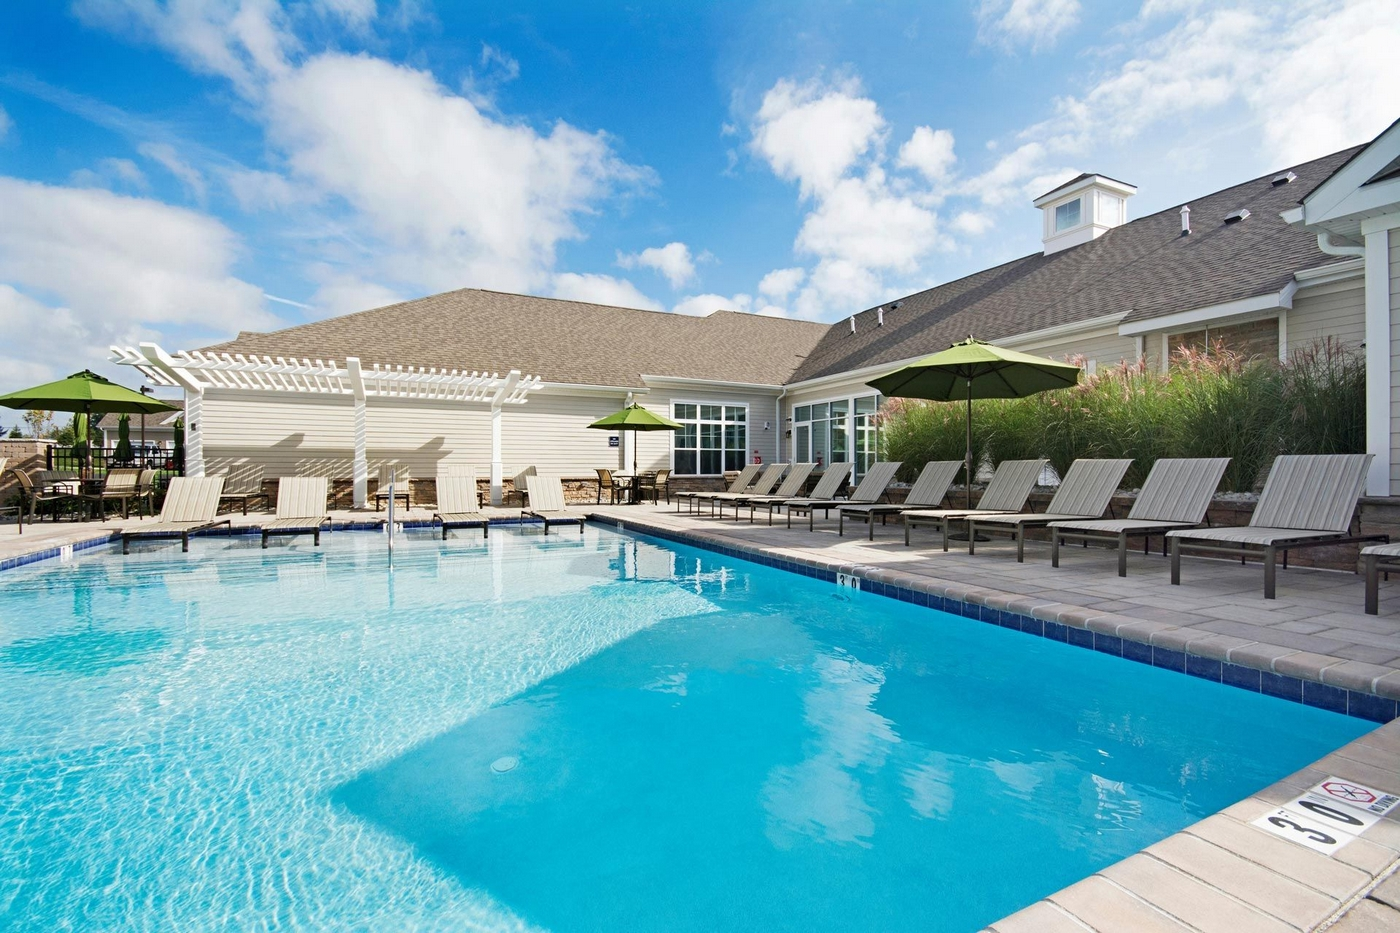 Community swimming pool and poolside lounging